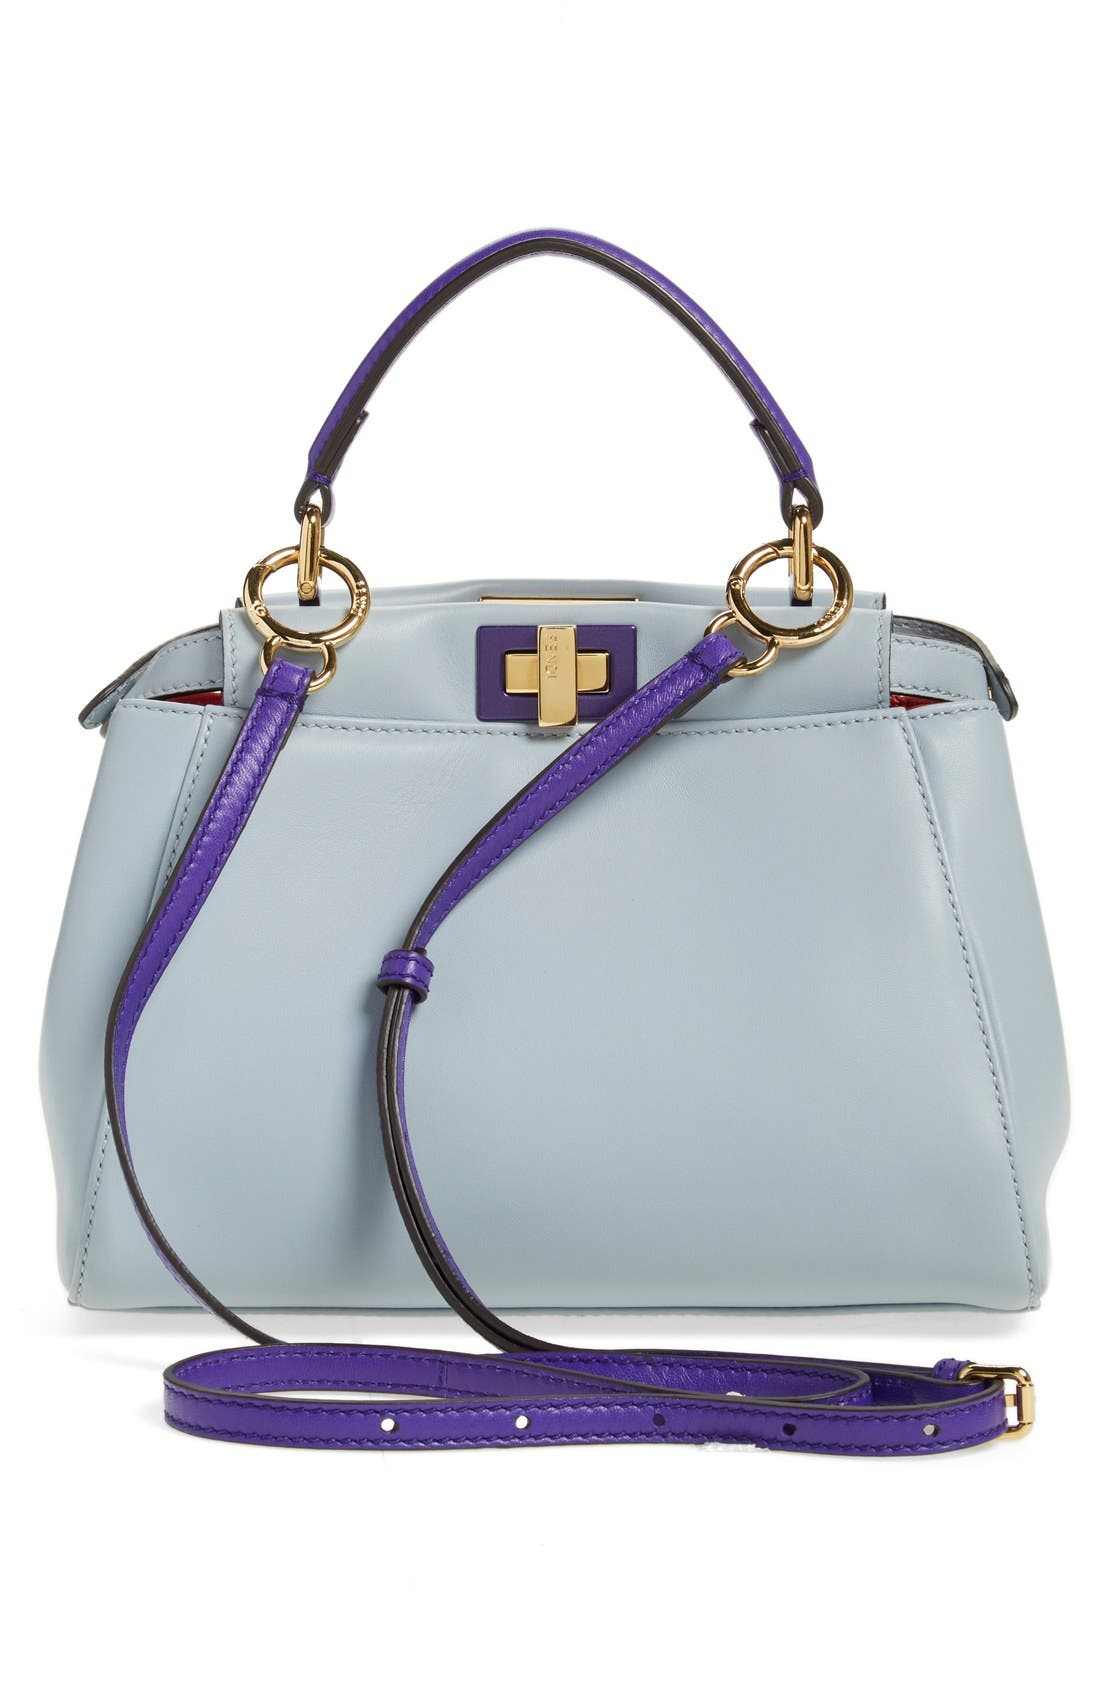 Main Image - Fendi 'Mini Peekaboo' Colorblock Leather Bag